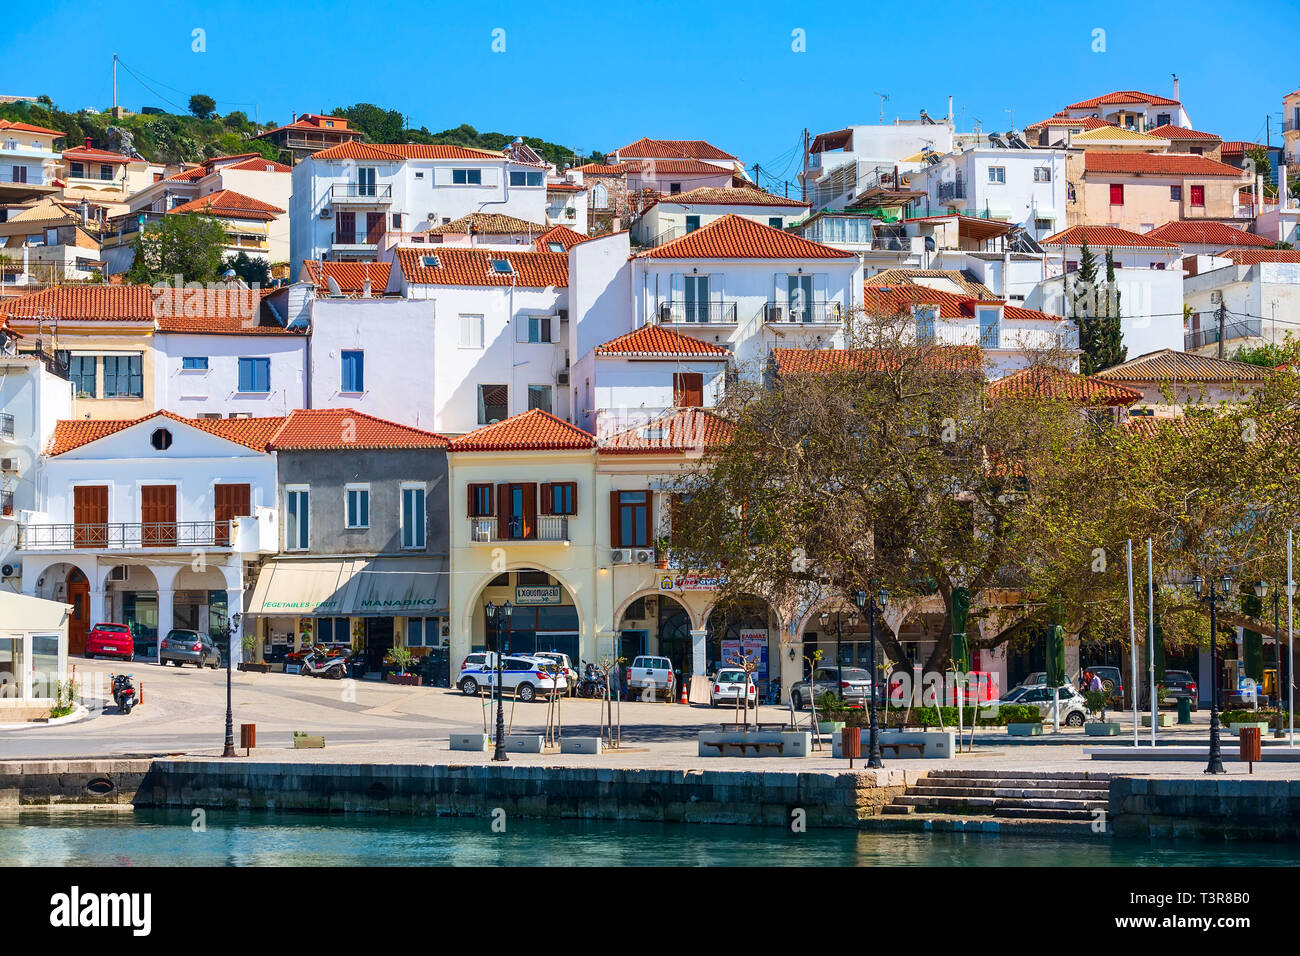 Pylos, Greece - April 2, 2019: Panoramic view of the town of Pylos located at Peloponnese, Messinia prefecture - Stock Image